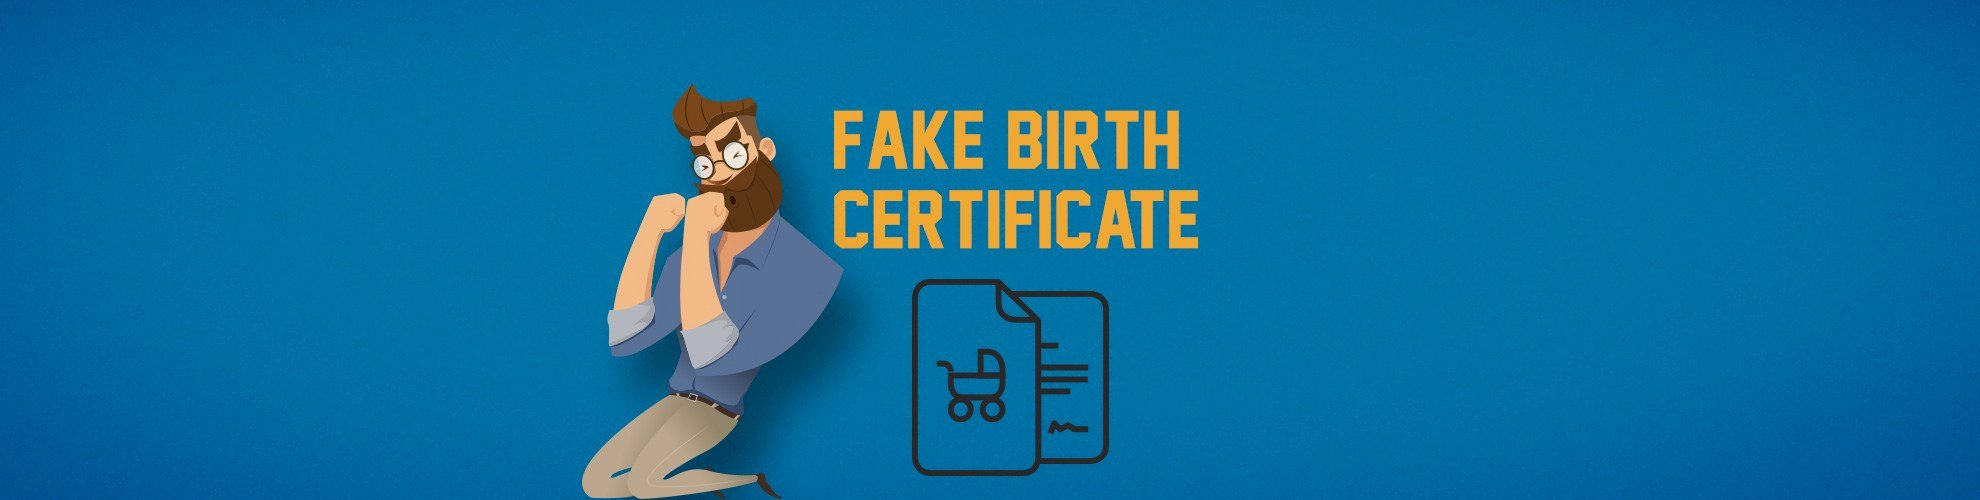 Make A Fake Death Certificate Lovely Buy Fake Birth Certificates Line forged Novelty Birth